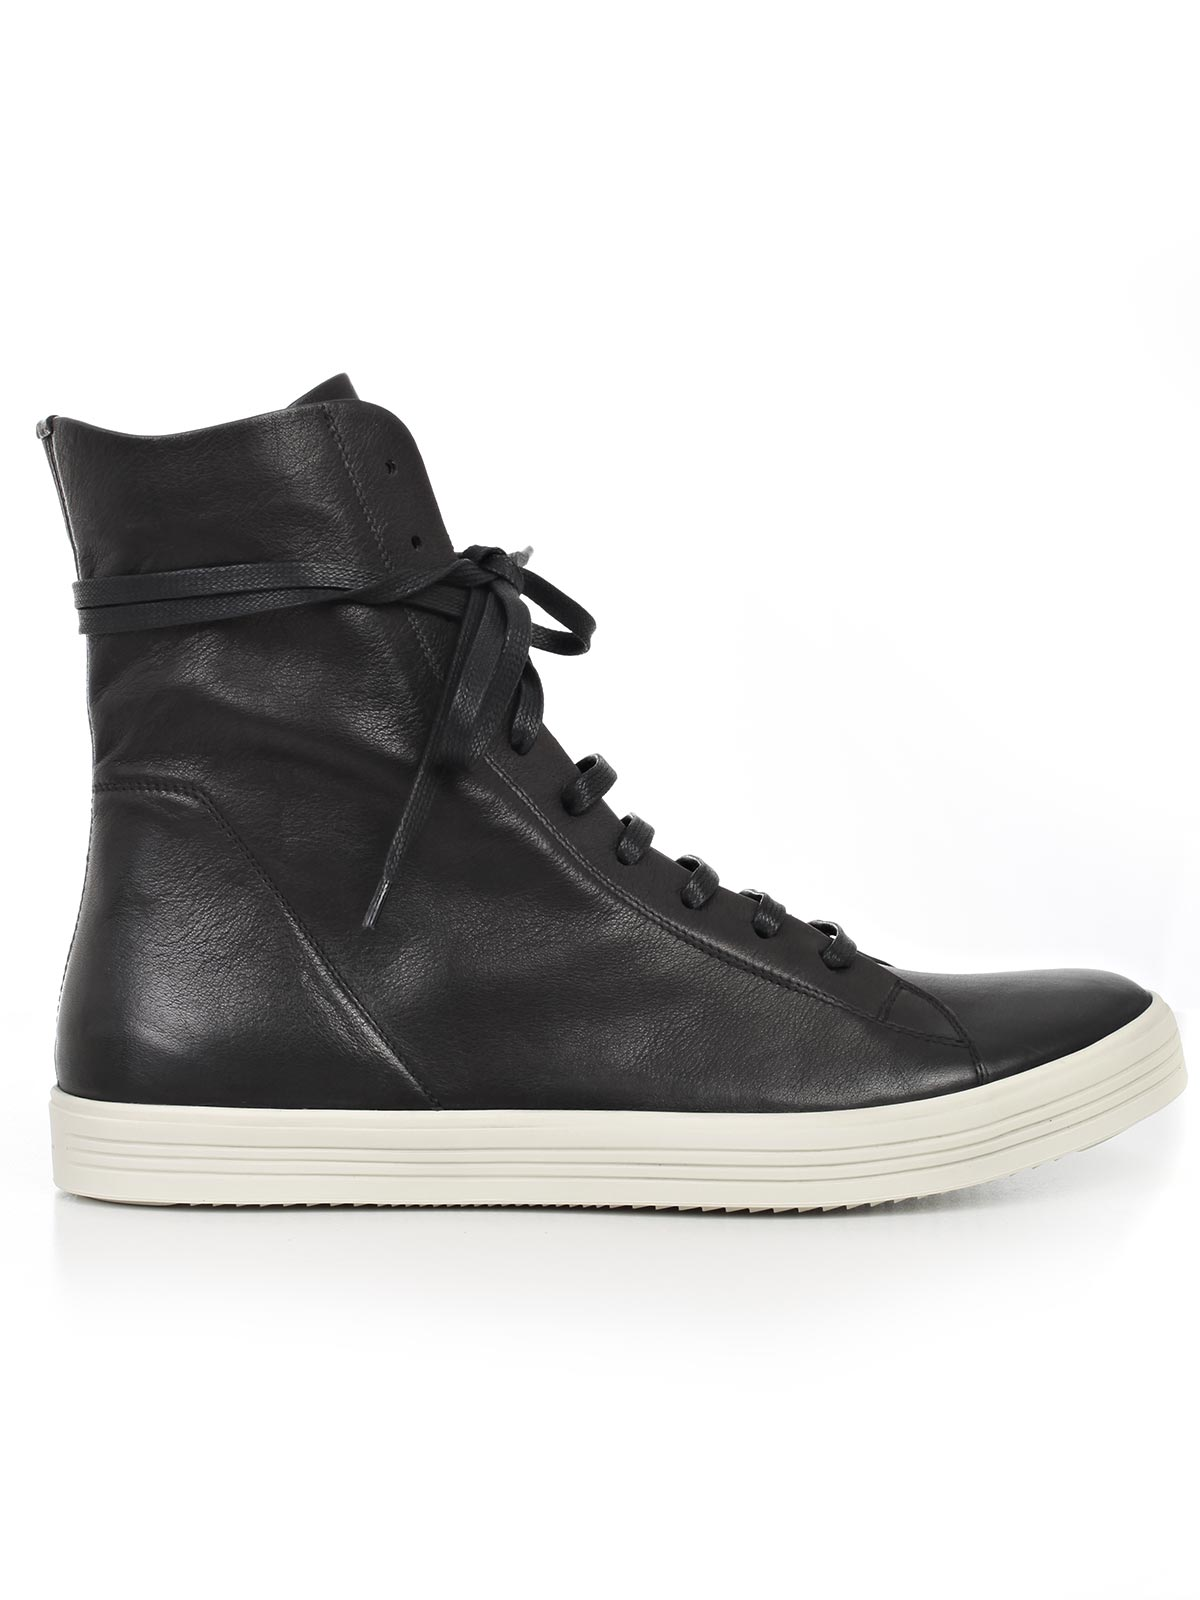 Picture of RICK OWENS FOOTWEAR